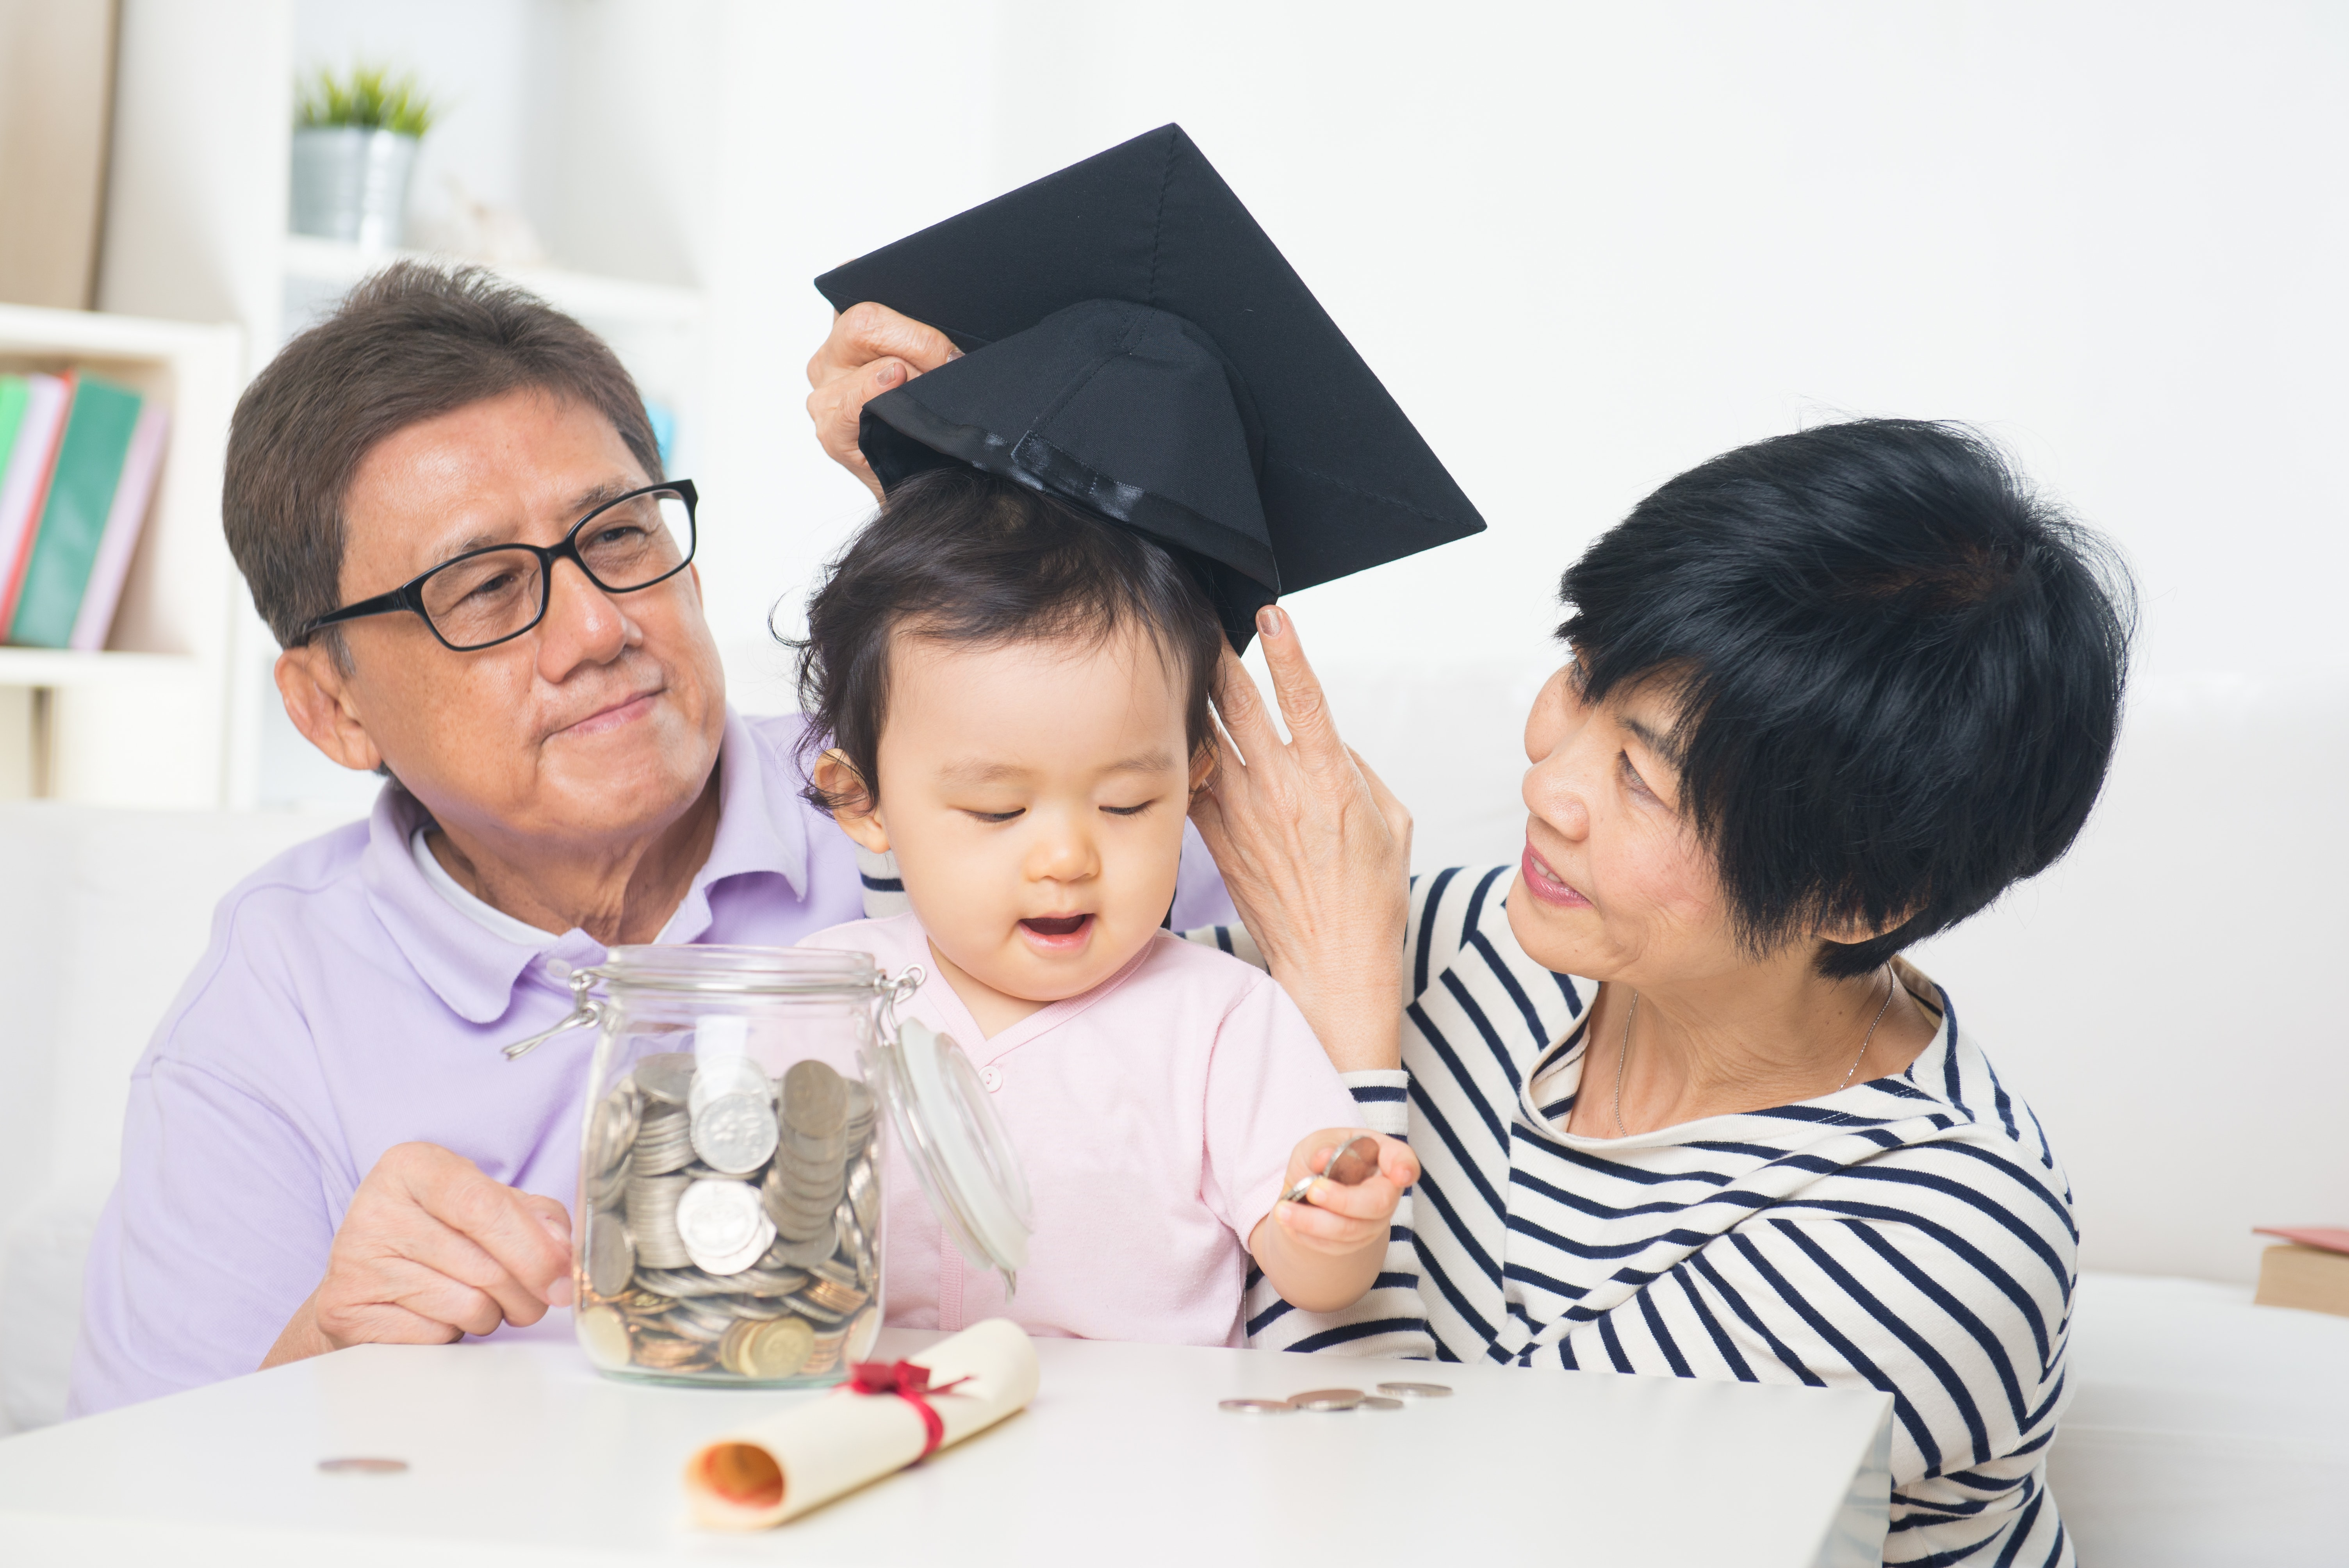 Can a Grandparent Open a Savings Account for a Child?